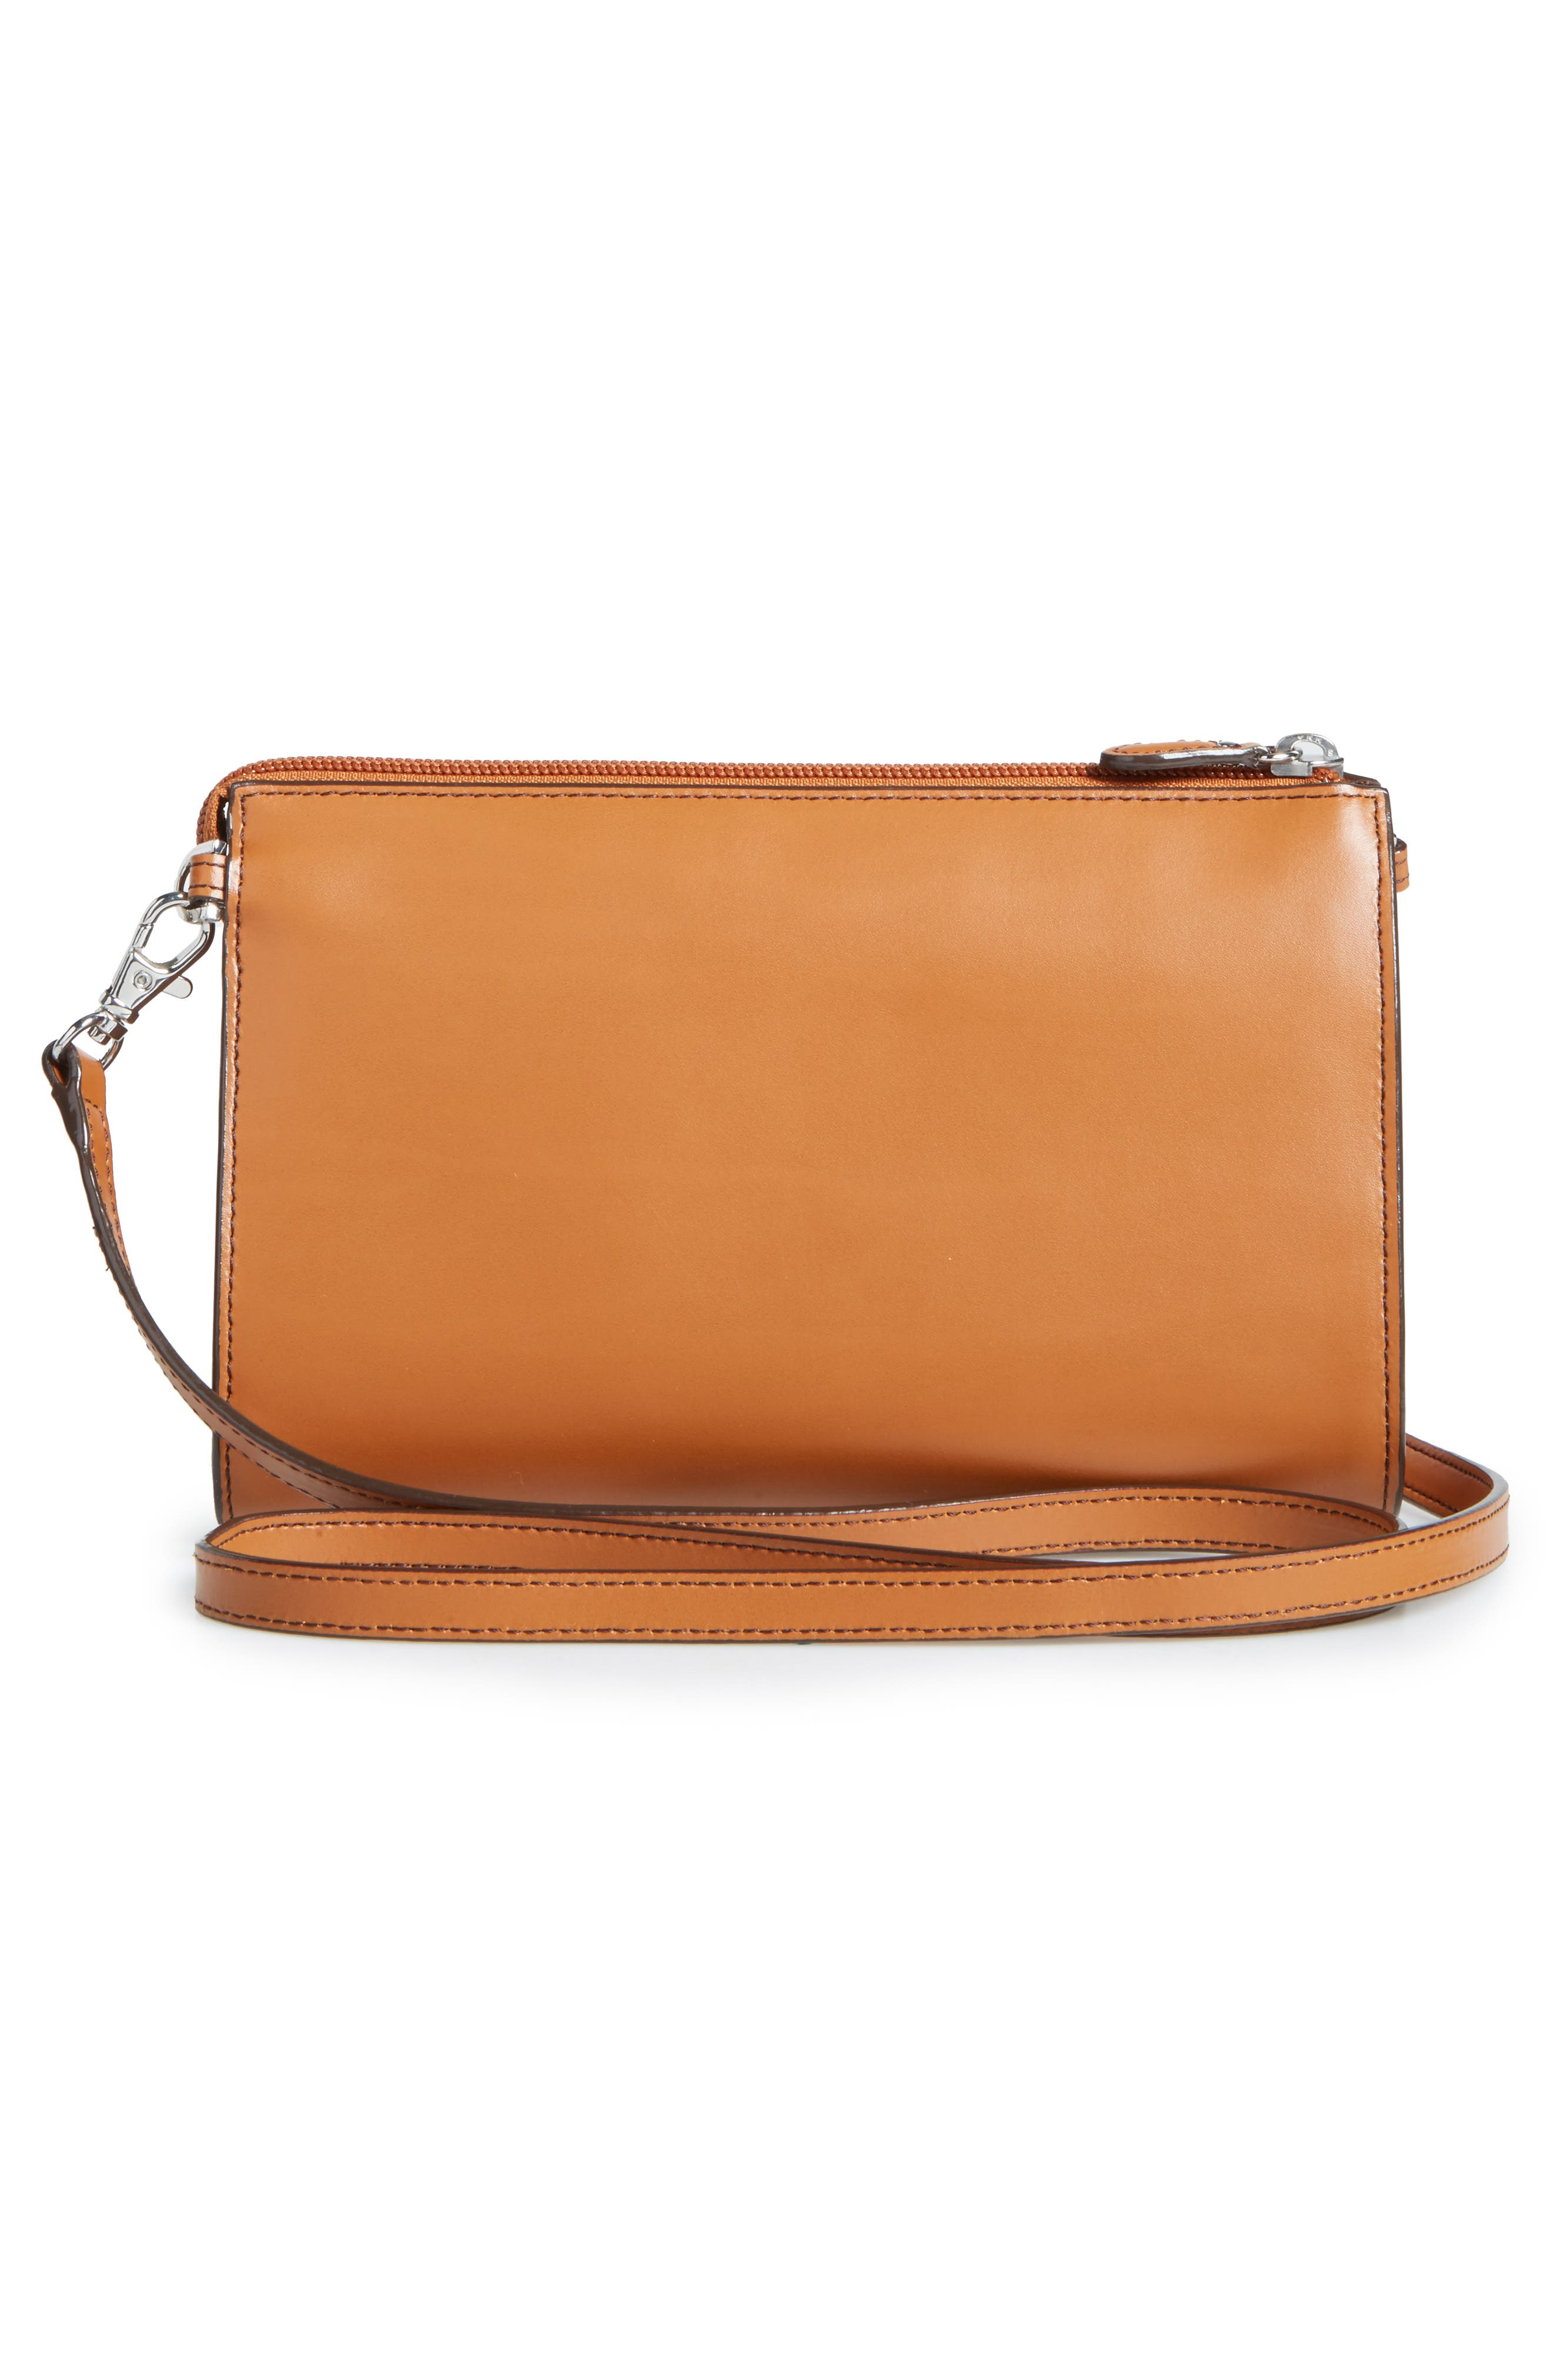 Audrey Under Lock & Key Vicky Convertible Leather Crossbody Bag,                             Alternate thumbnail 3, color,                             TOFFEE